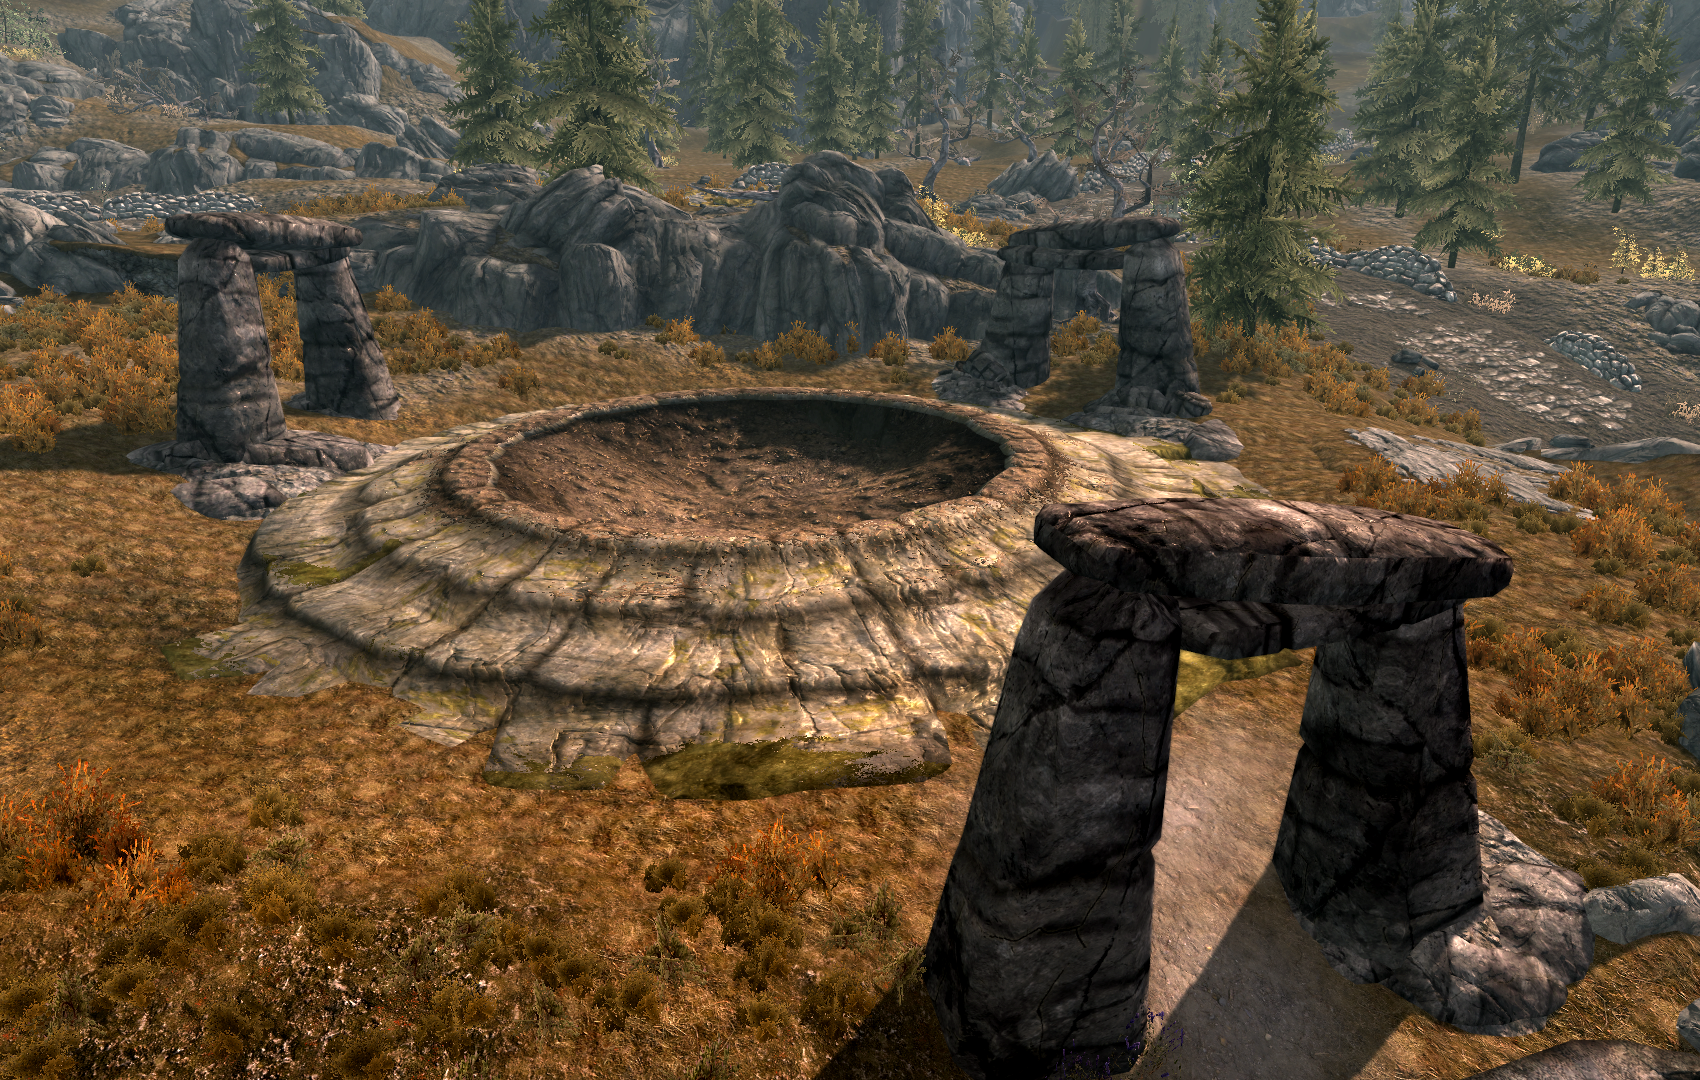 great henge resurrection the elder scrolls wiki wikia